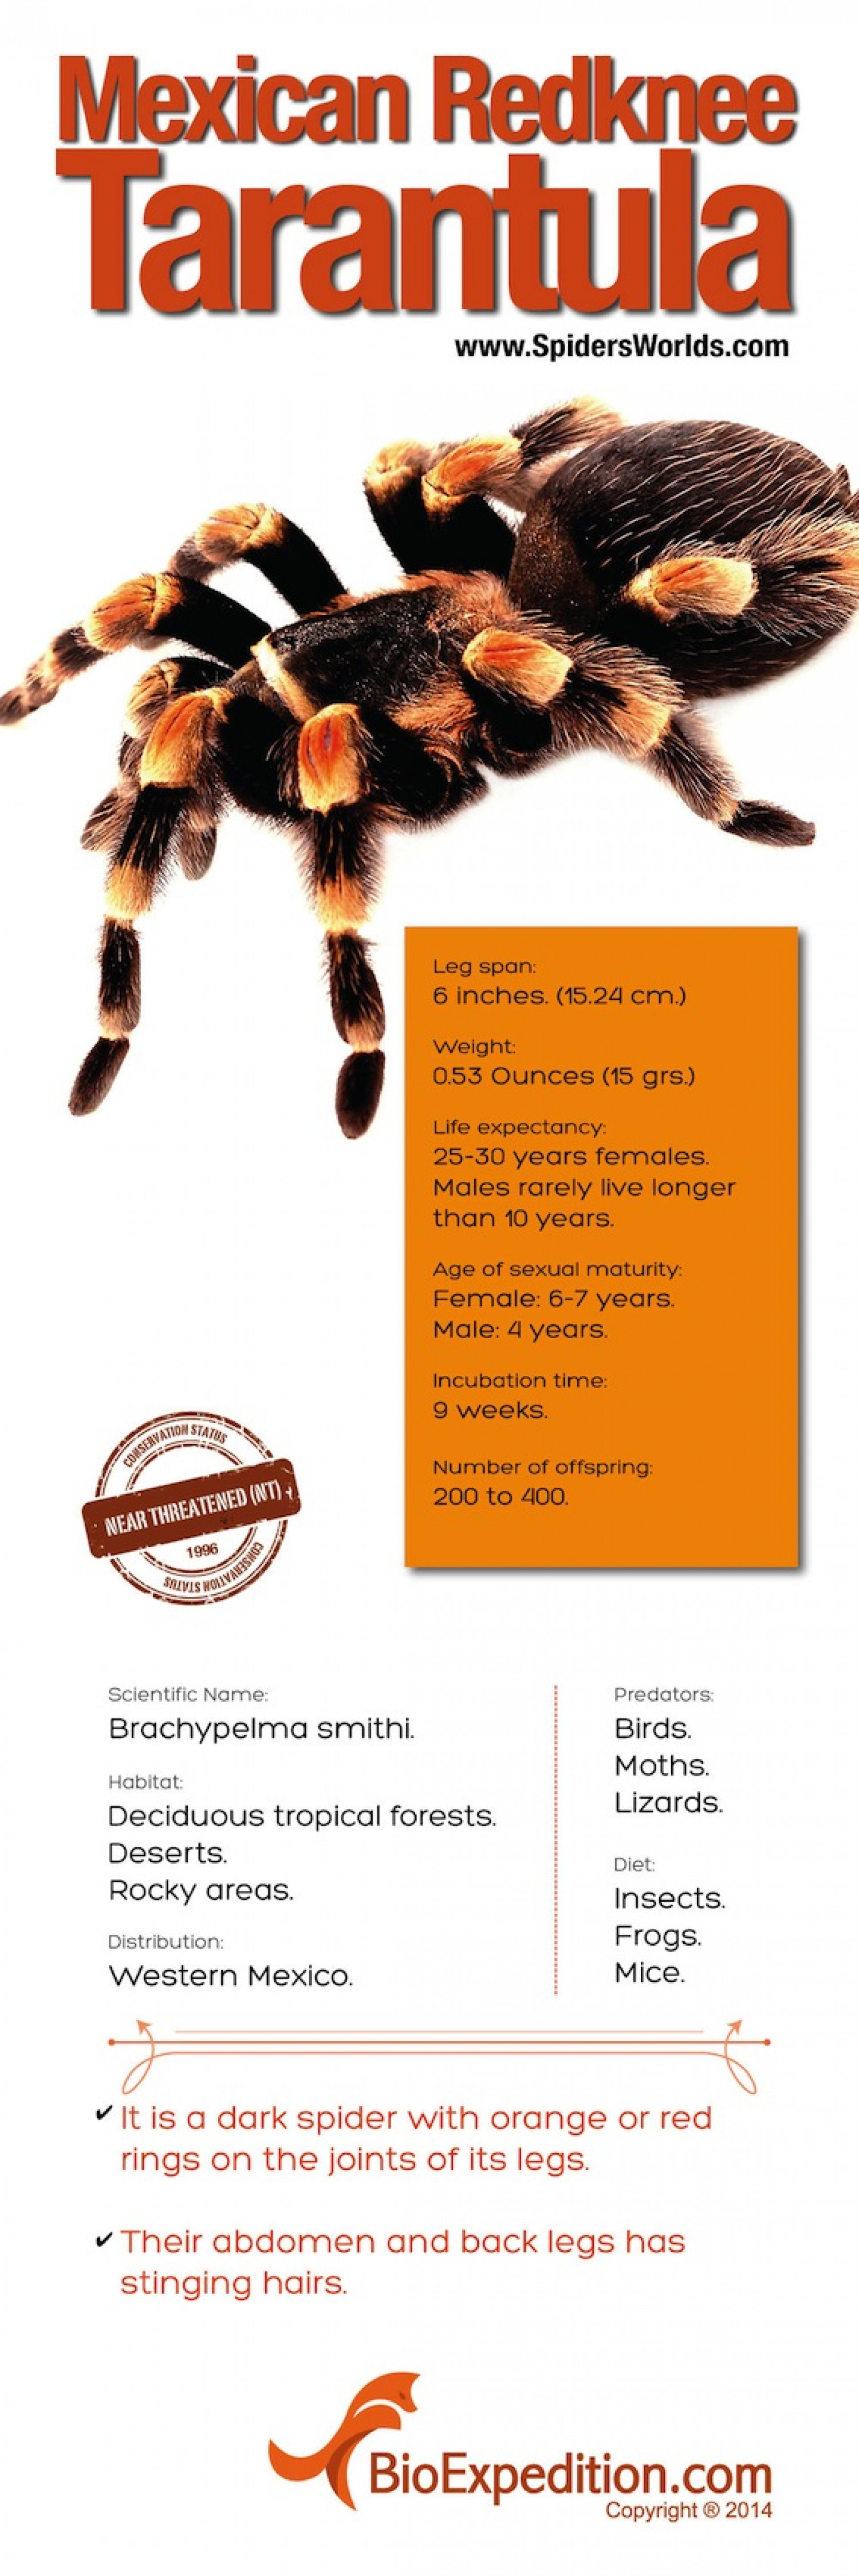 Mexican red-kneed tarantula Infographic